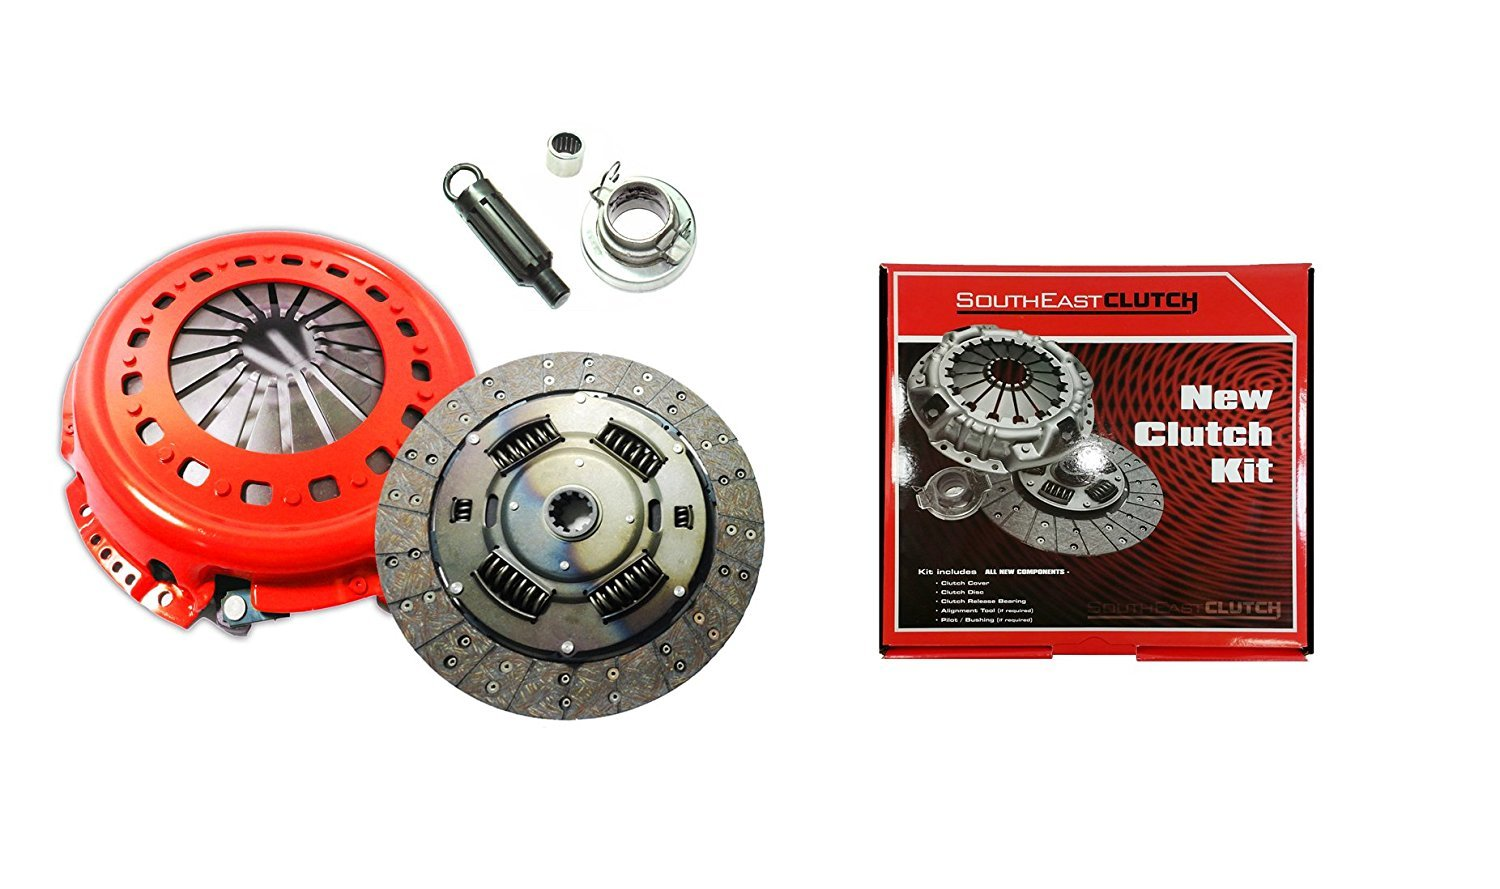 southeast-clutch etapa 2 Kit de embrague Dodge Ram 2500 3500 5.9l Cummins Diesel 6 velocidad: Amazon.es: Coche y moto